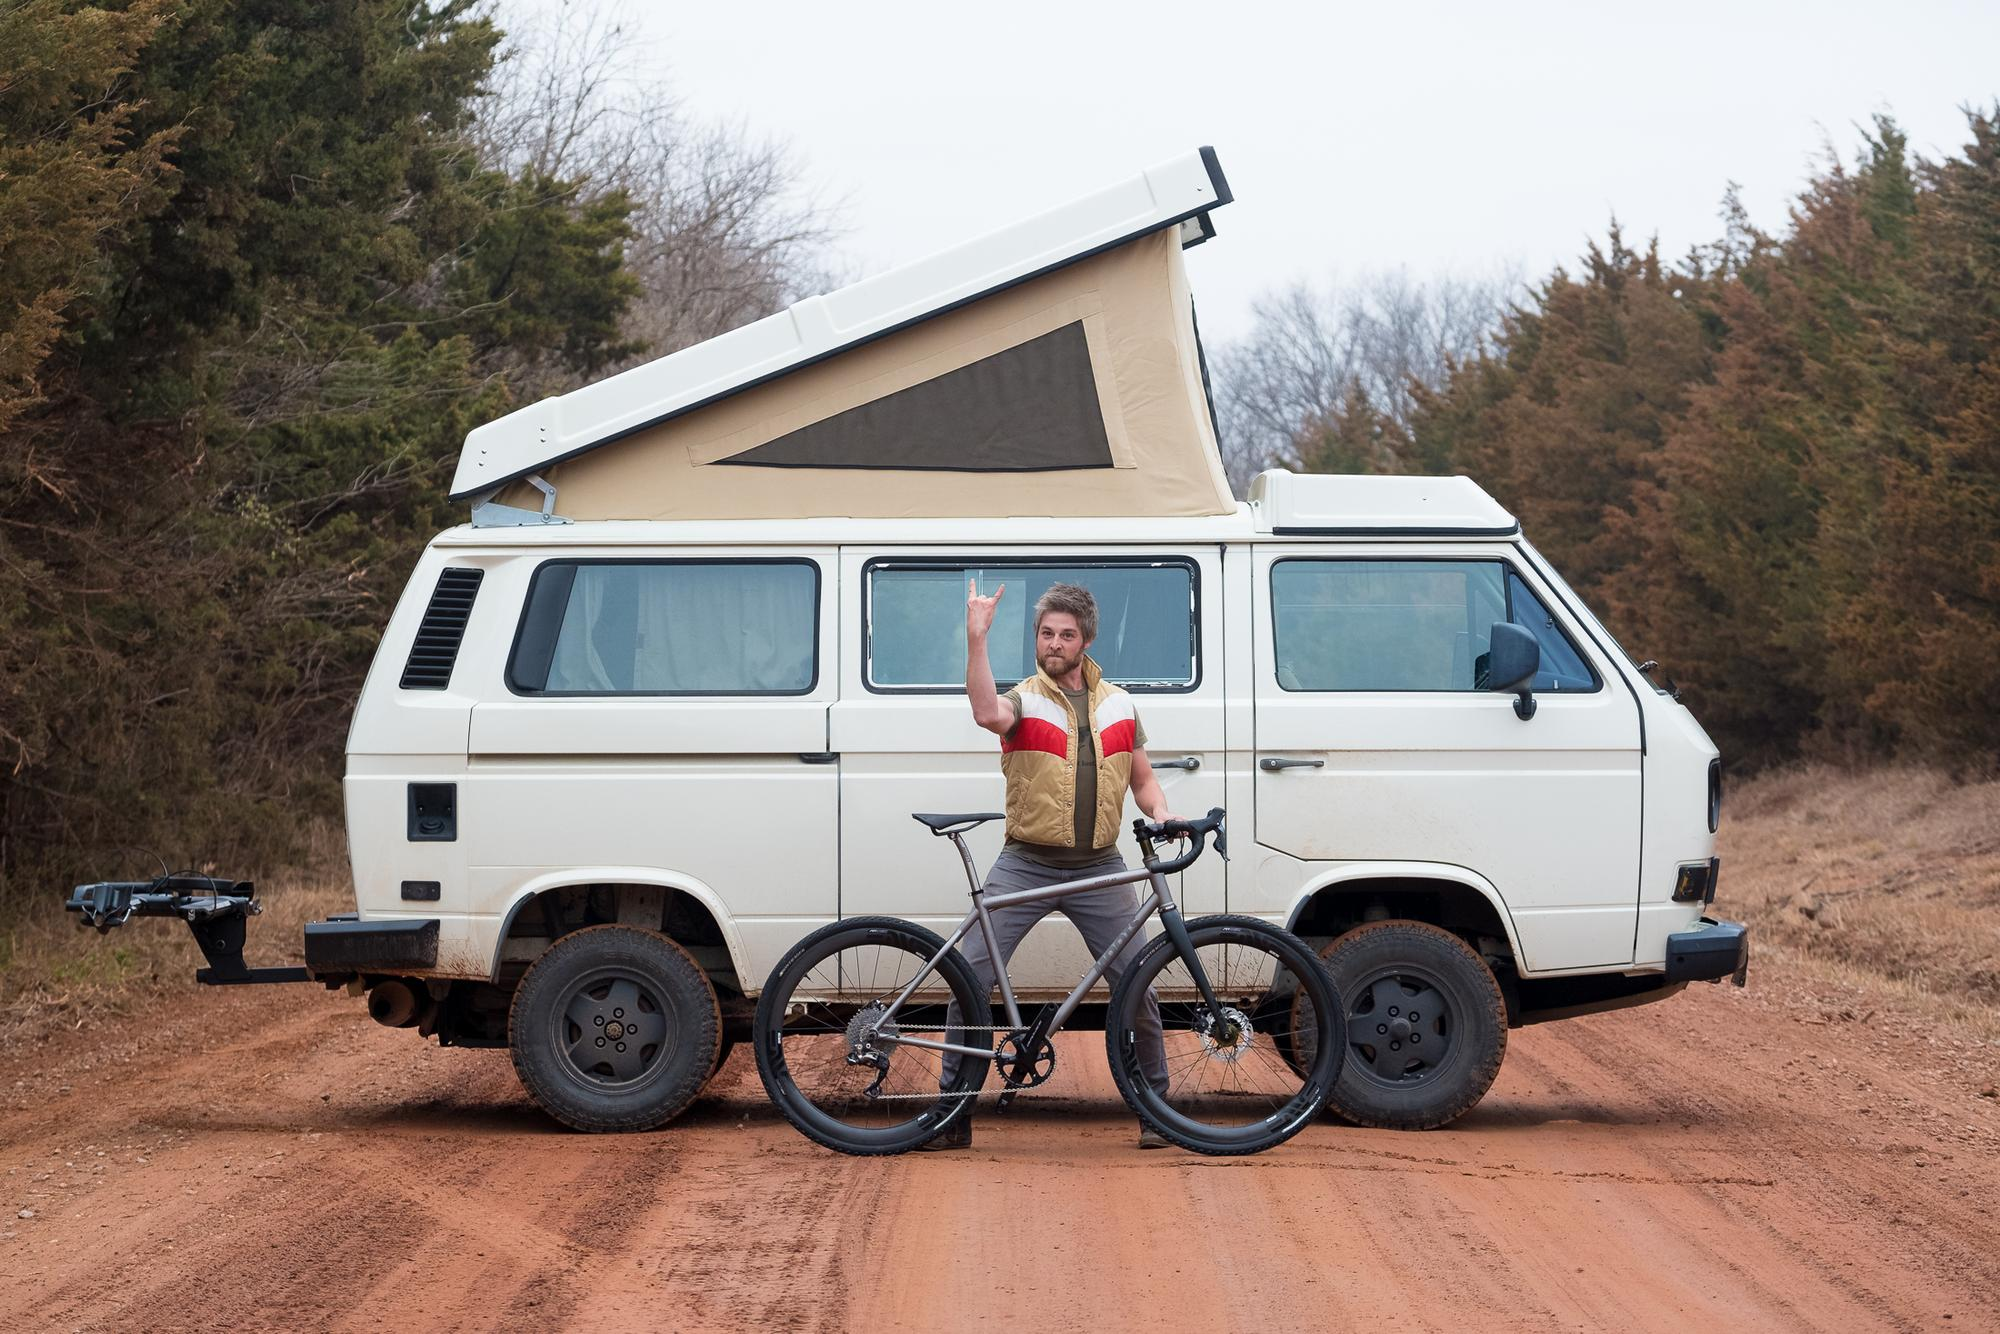 Bobby's Land Run 100 Moots Routt 45